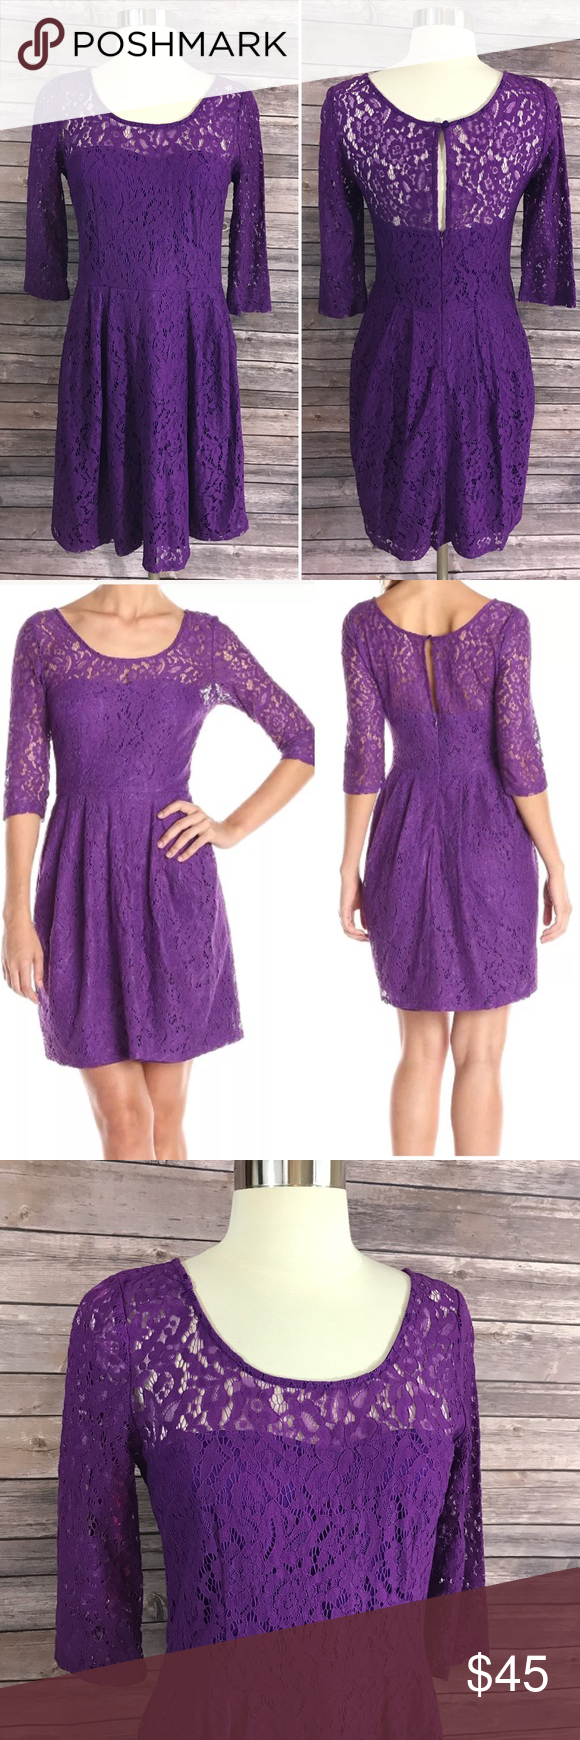 Lace dress size 16 measurements